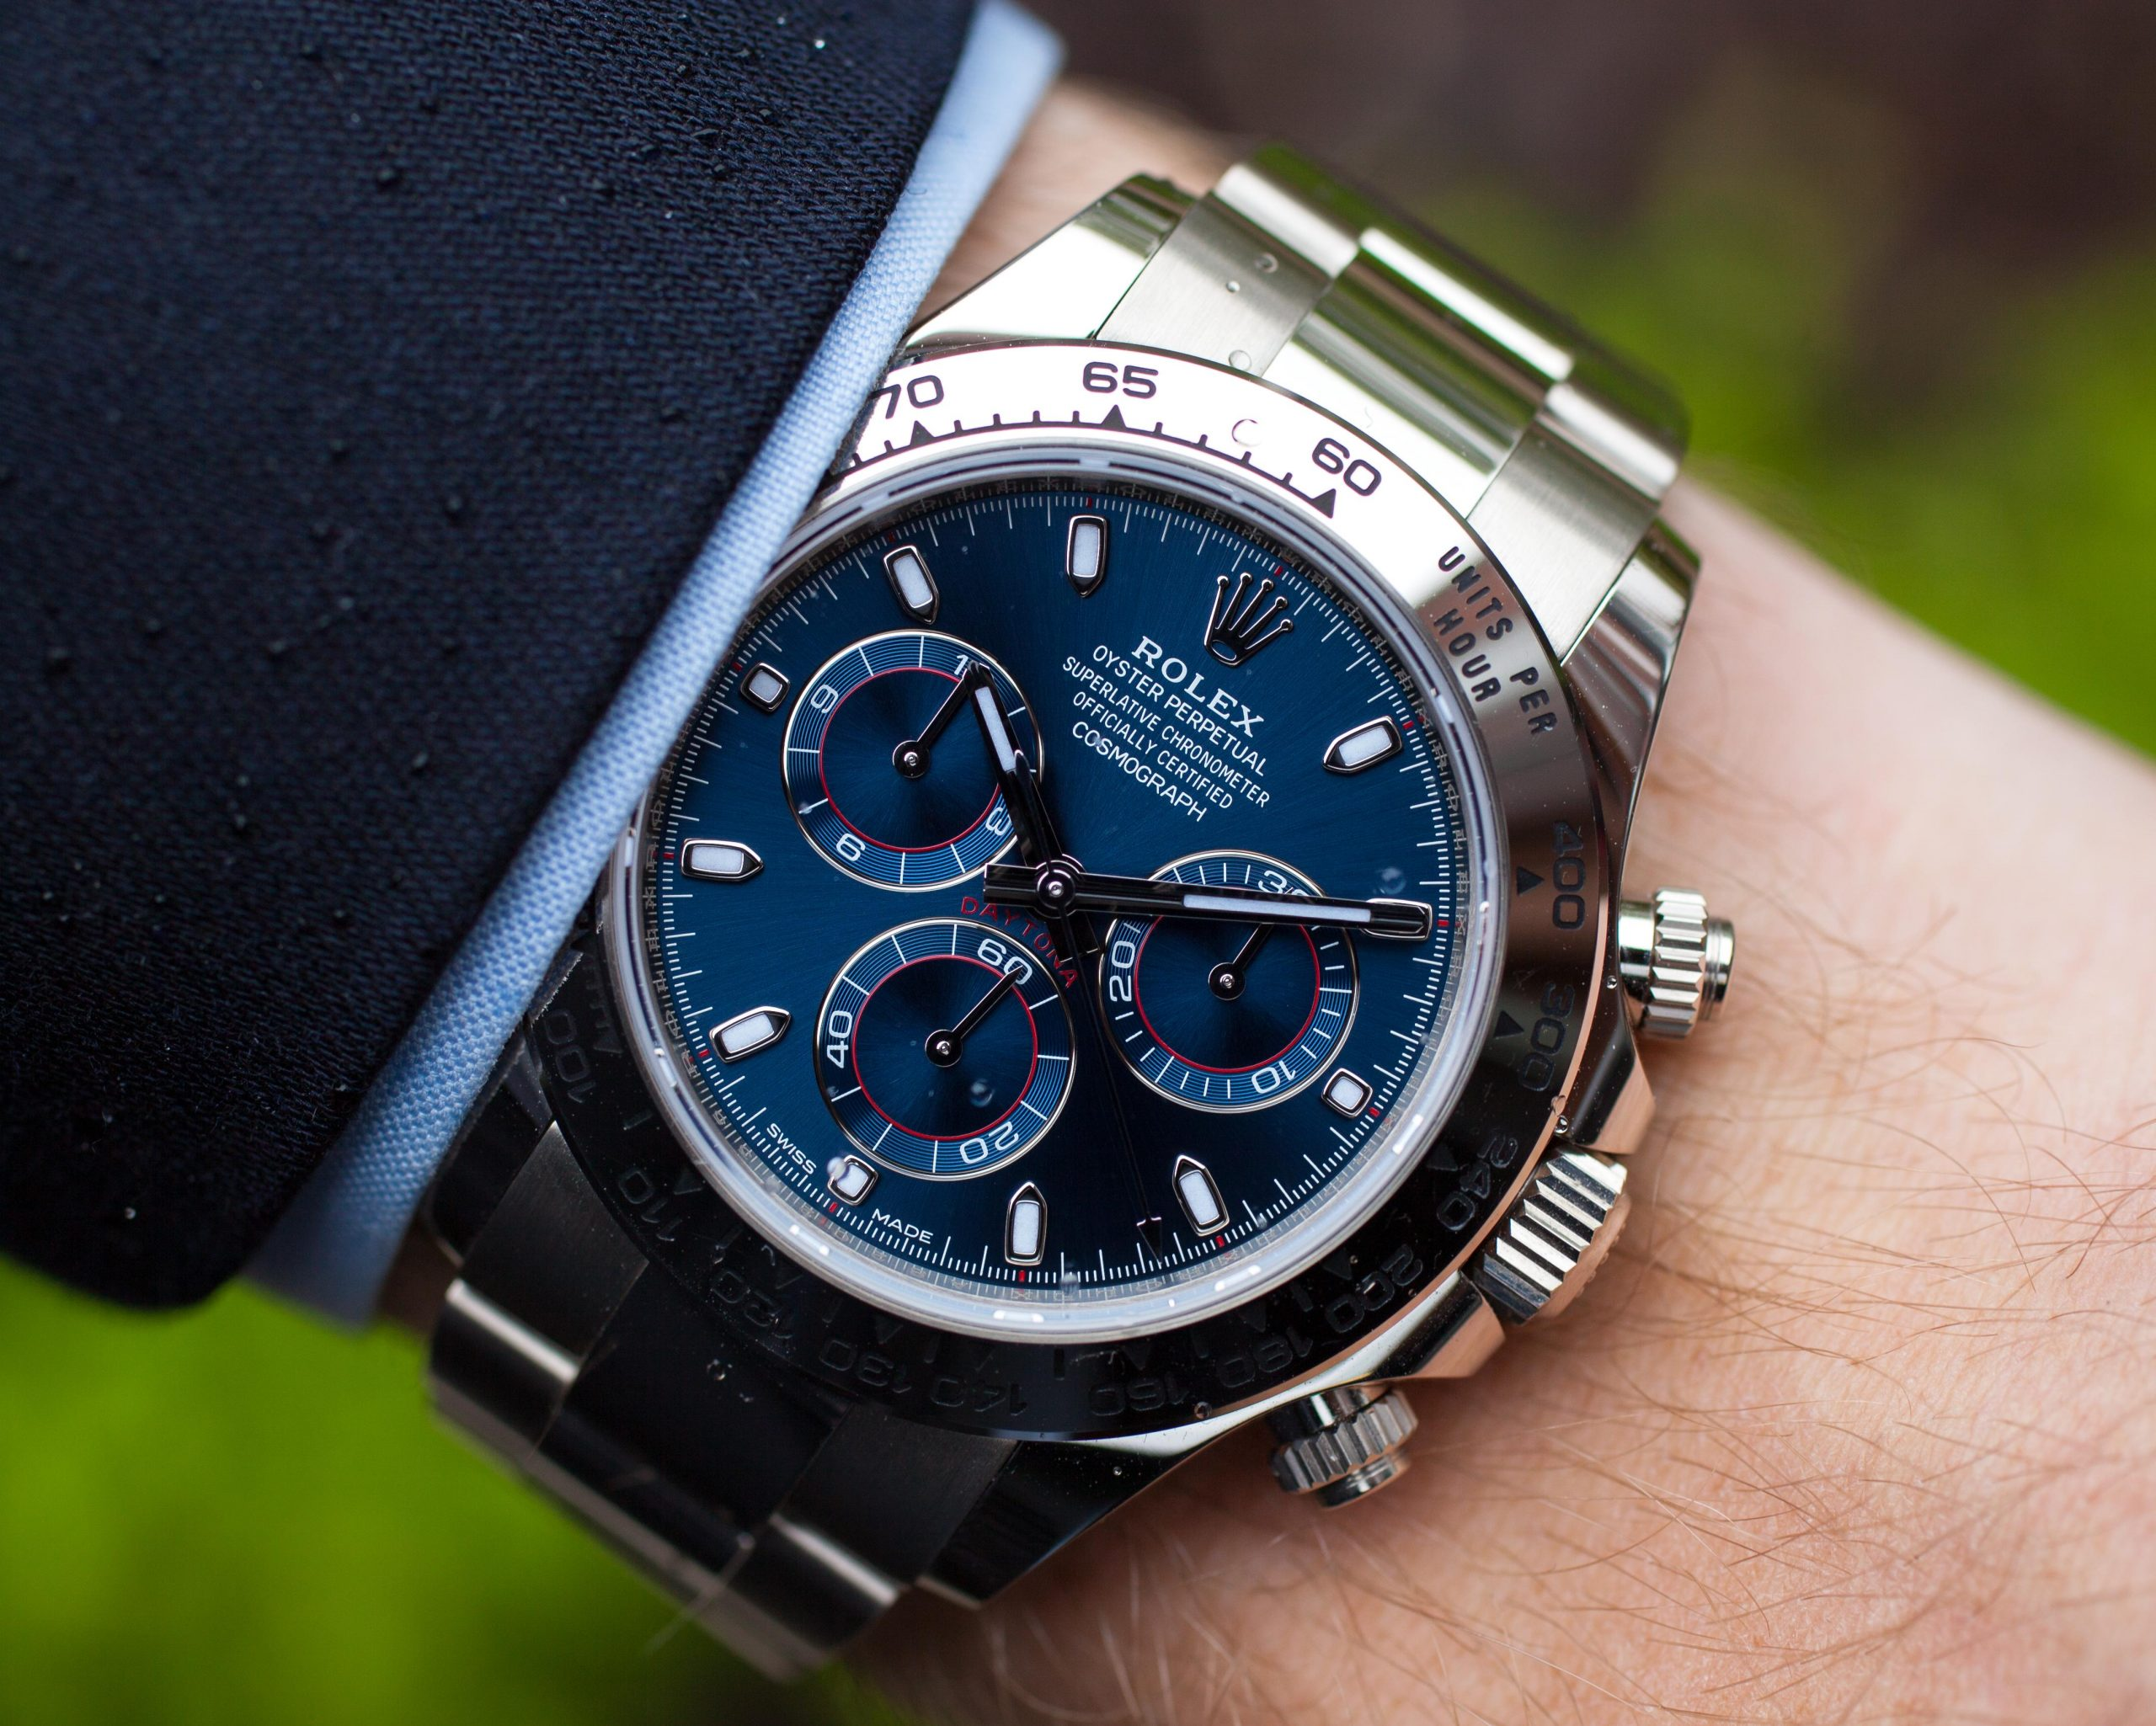 Hydrophilic coatings for watches